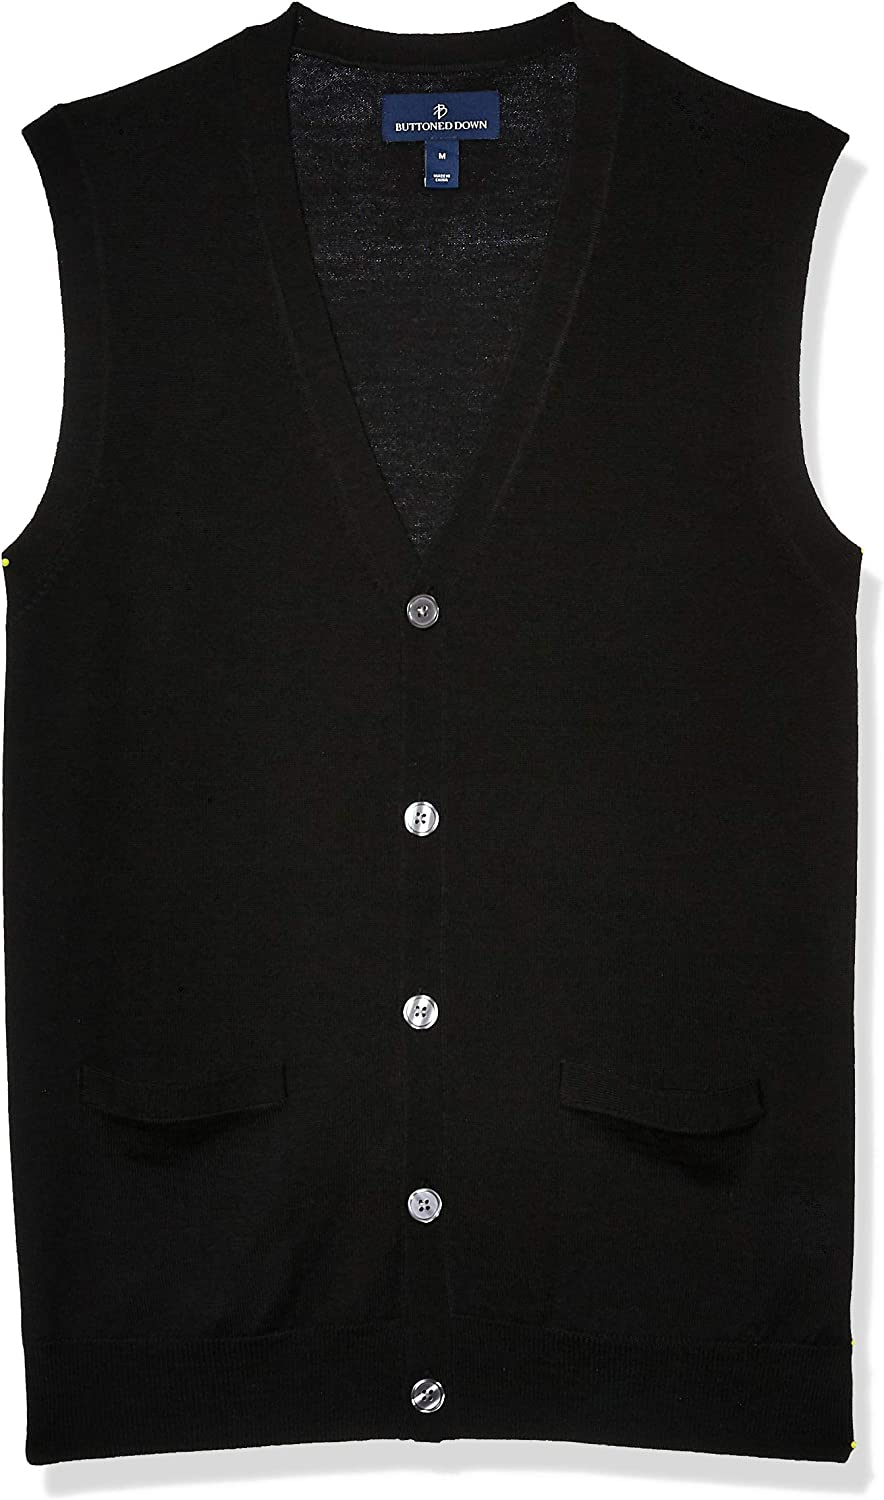 Button up sweater vest for men new hampshire investment firms